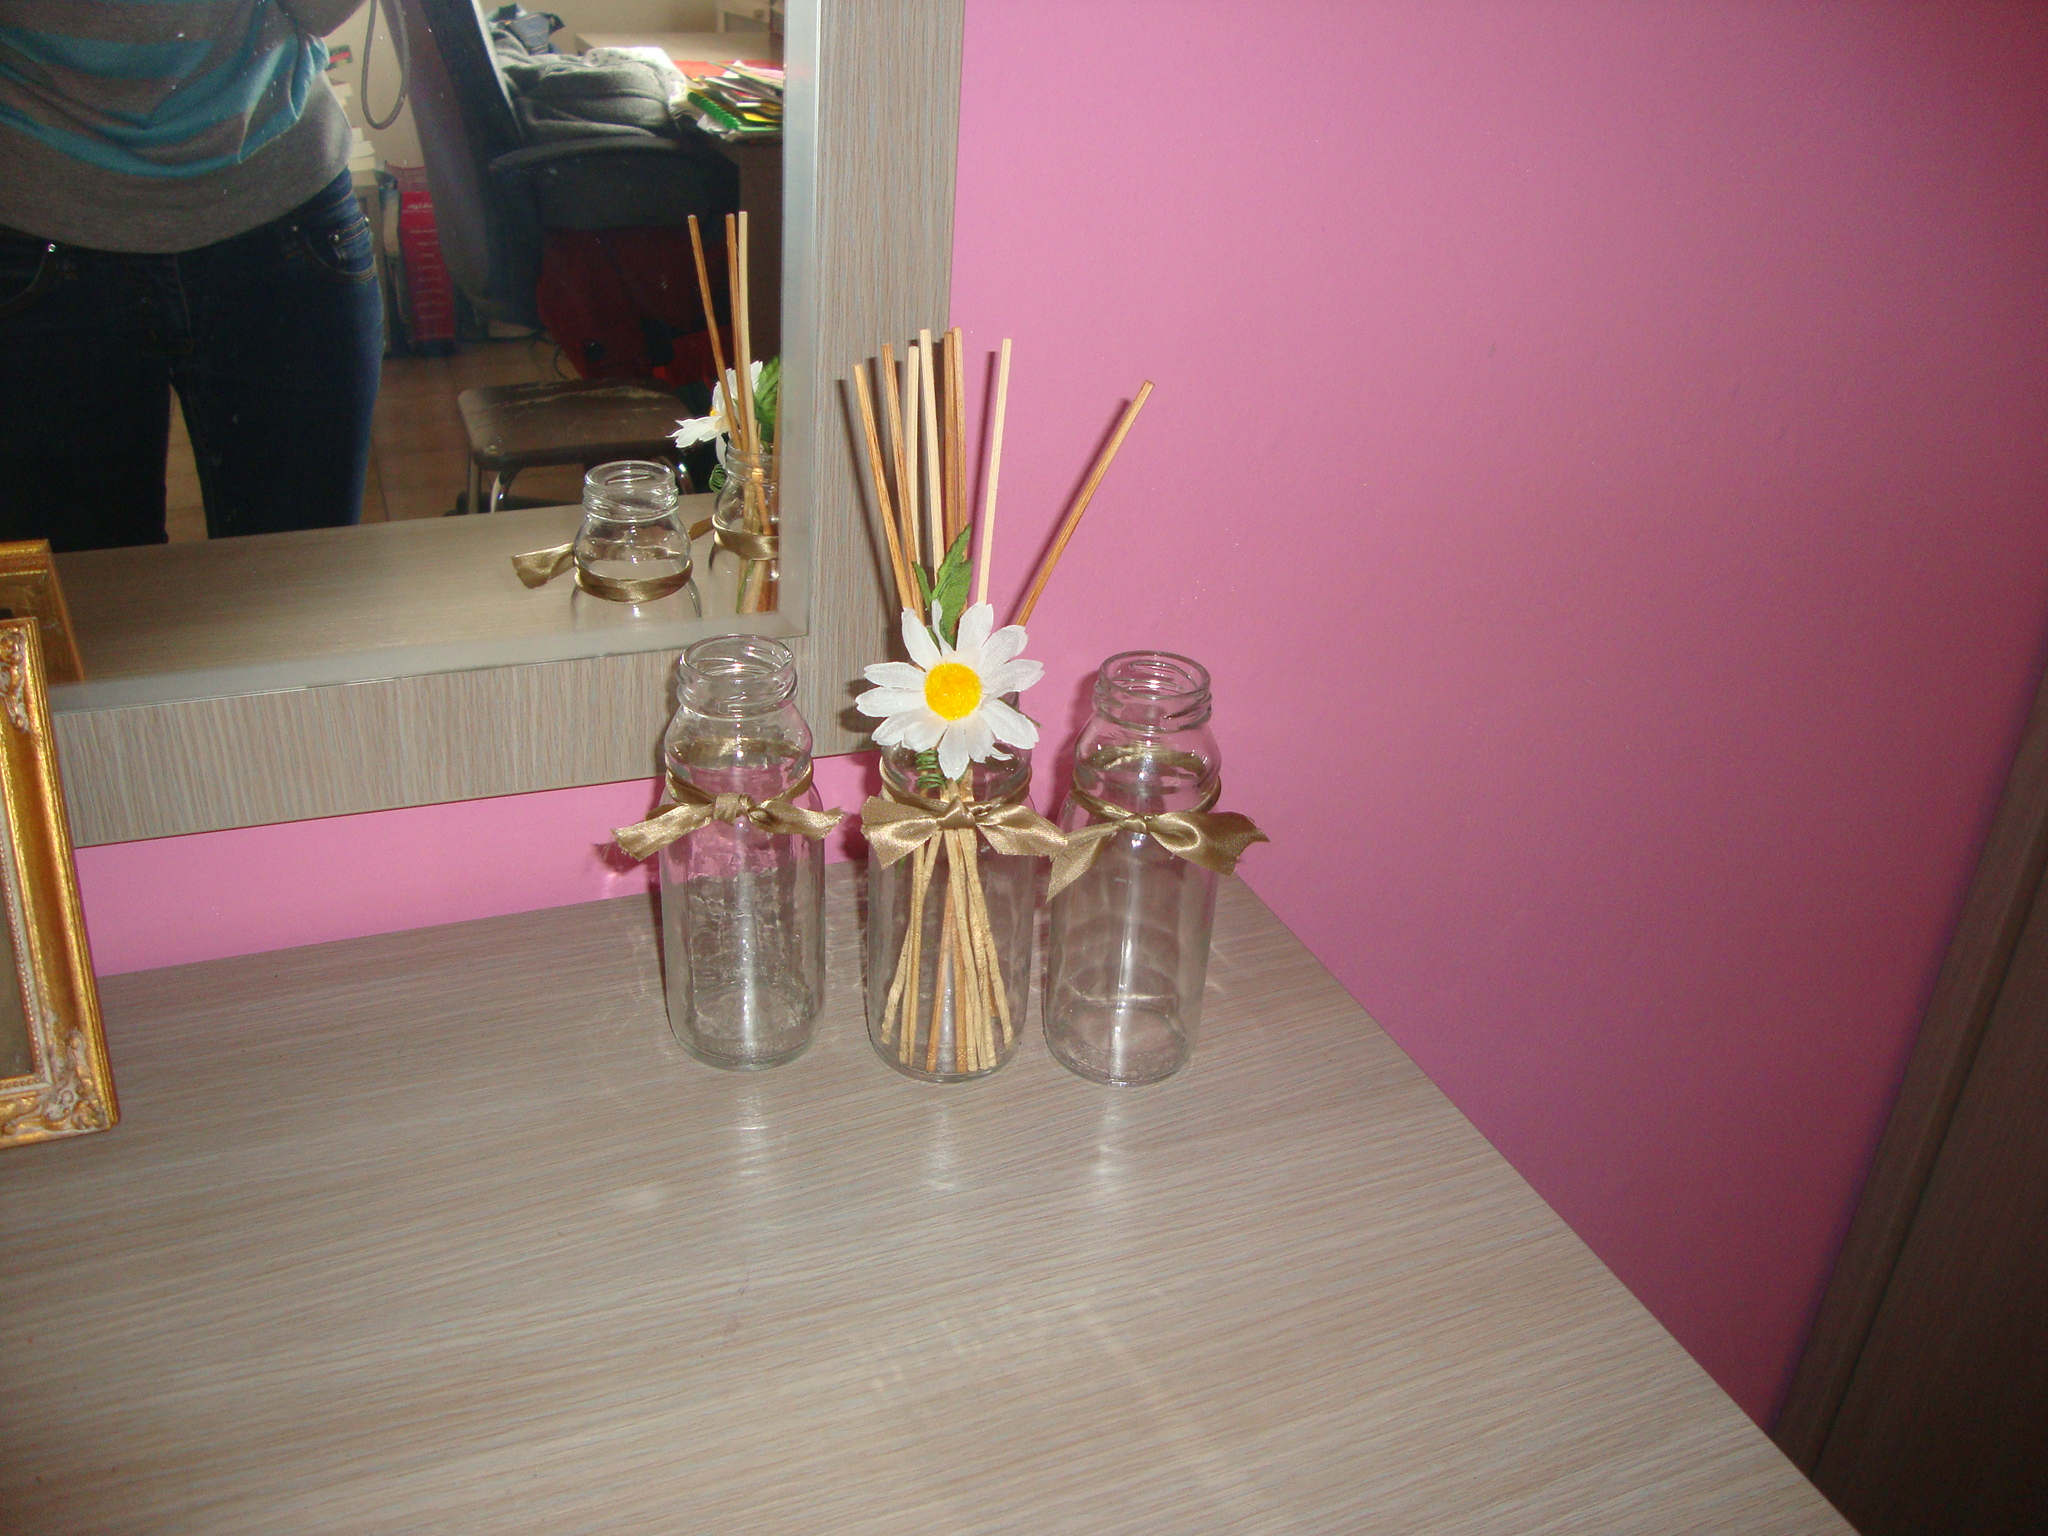 Diy kamer decoratie jlovesbeauty - Decoratie kamer ...